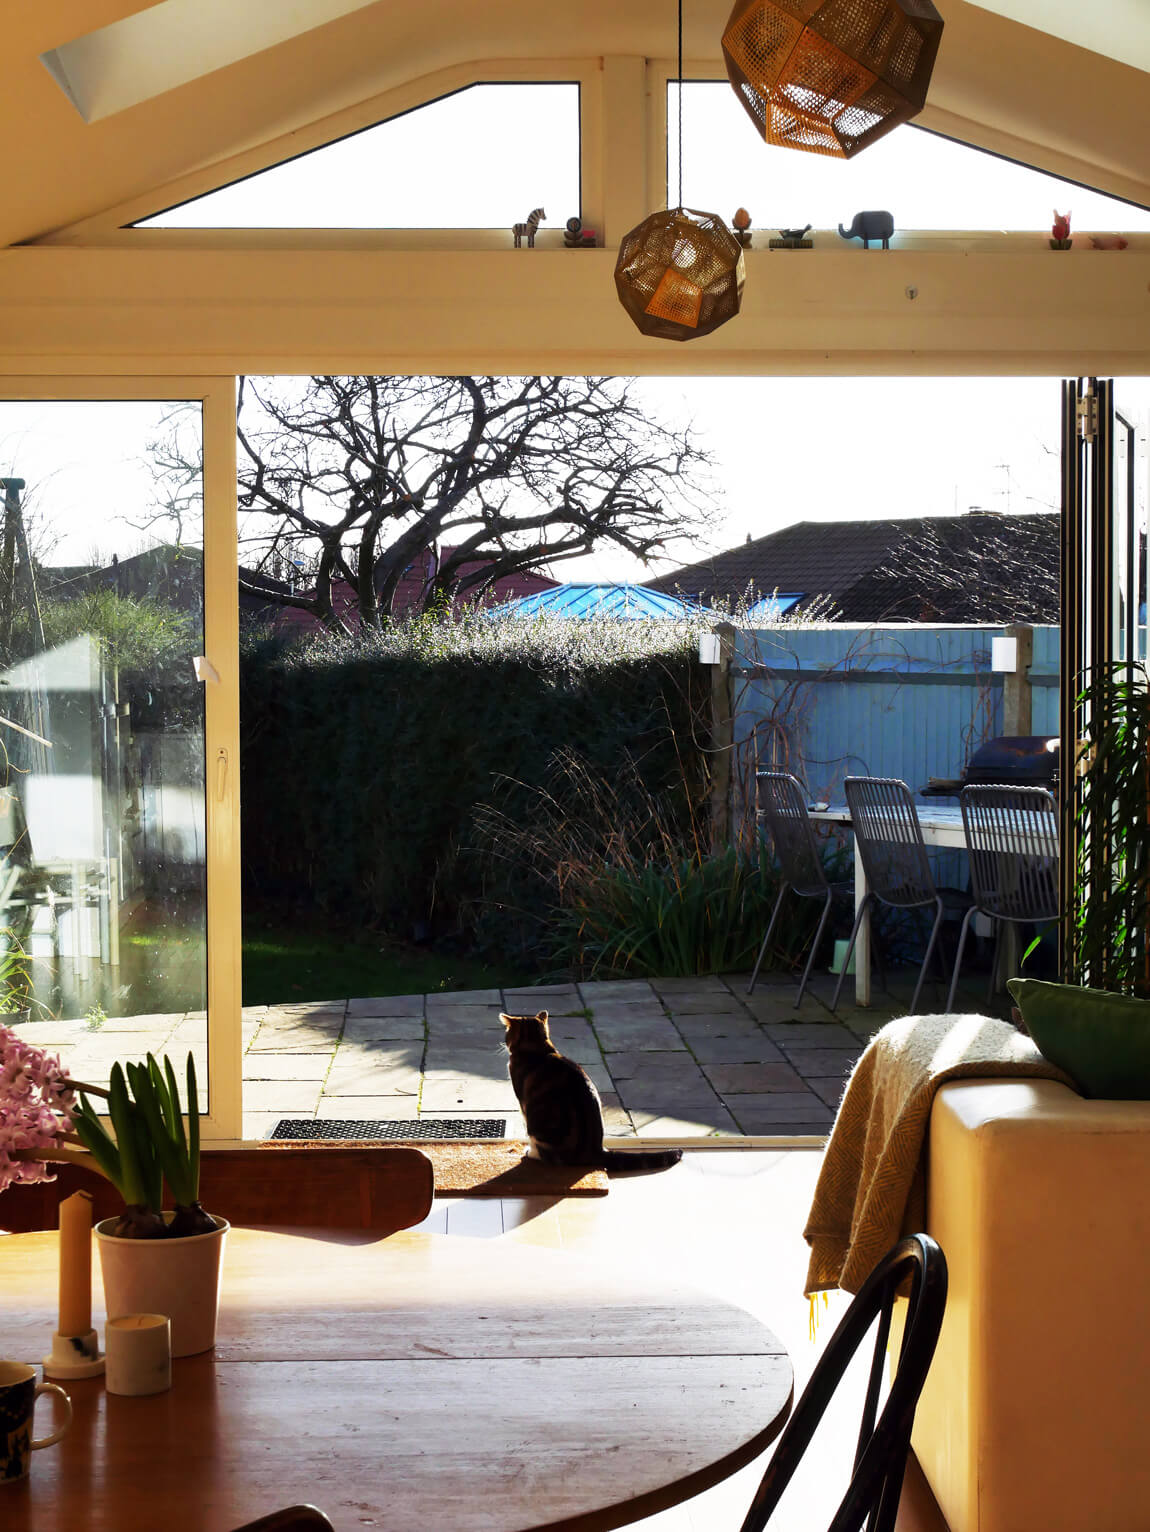 Cat looking out over the garden, enjoying the springtime sun. The patio slabs are close in colour to the wood flooring inside, to give a seamless indoor-outdoor transition.